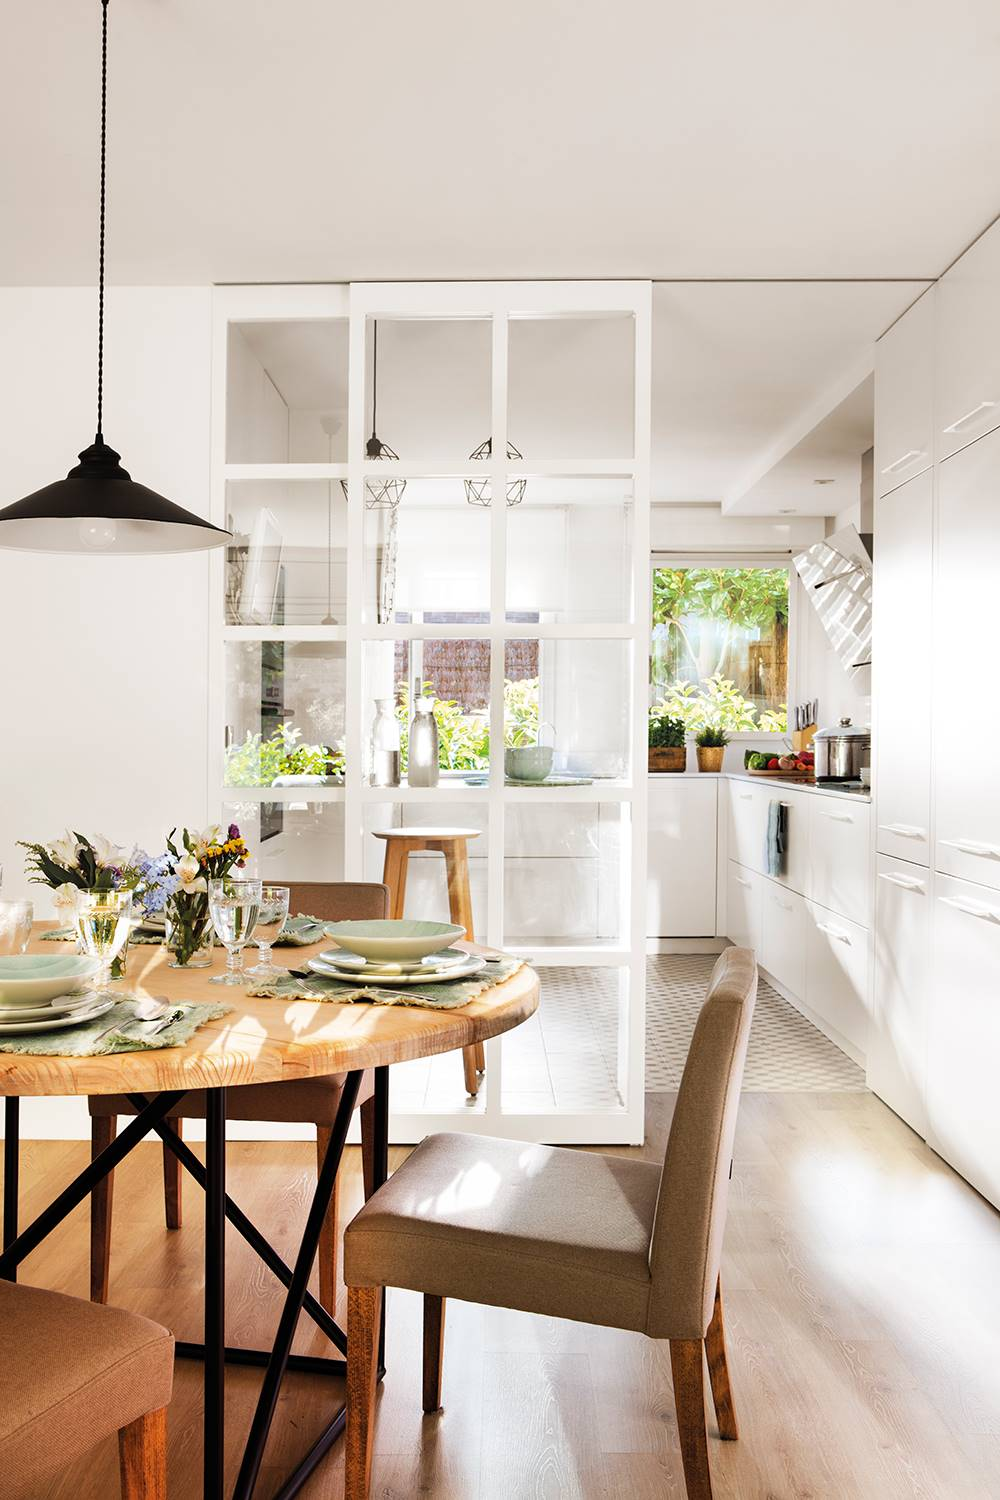 Kitchen-thousand-cabinets-00497485.  A semi-open kitchen with a glass panel